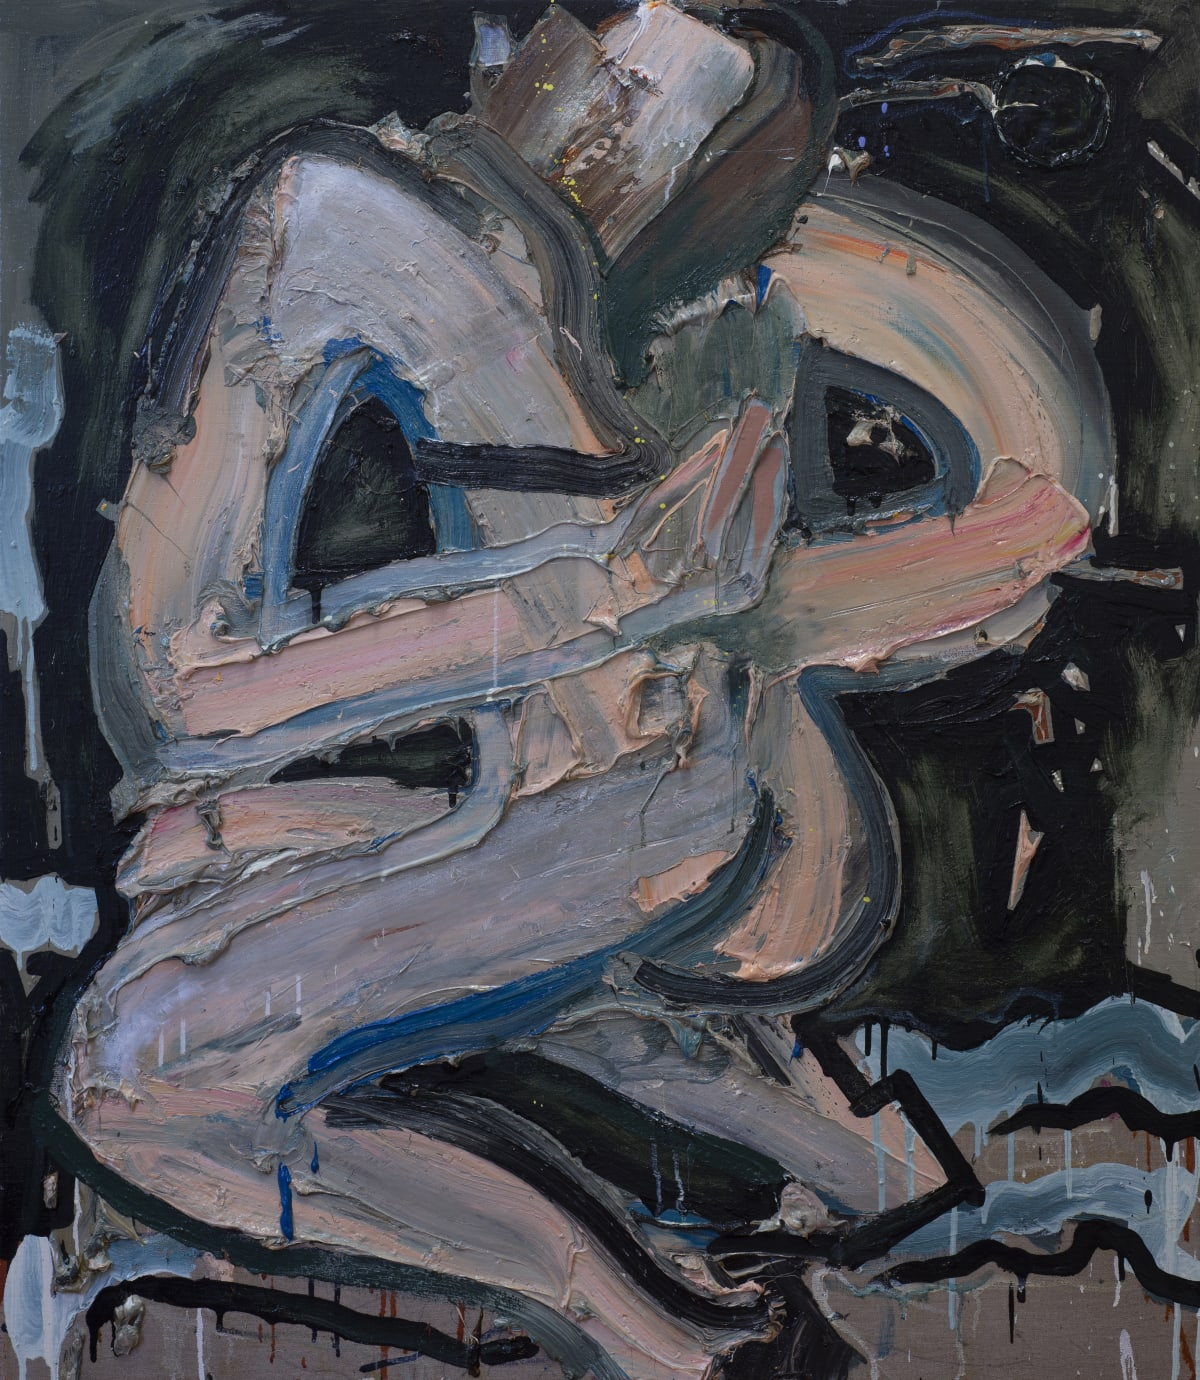 Toby Raine Female Model Undoing Bra From Behind (Image Chosen by Eddie von Dadelszen), 2019 Oil on linen 1150 x 1000mm